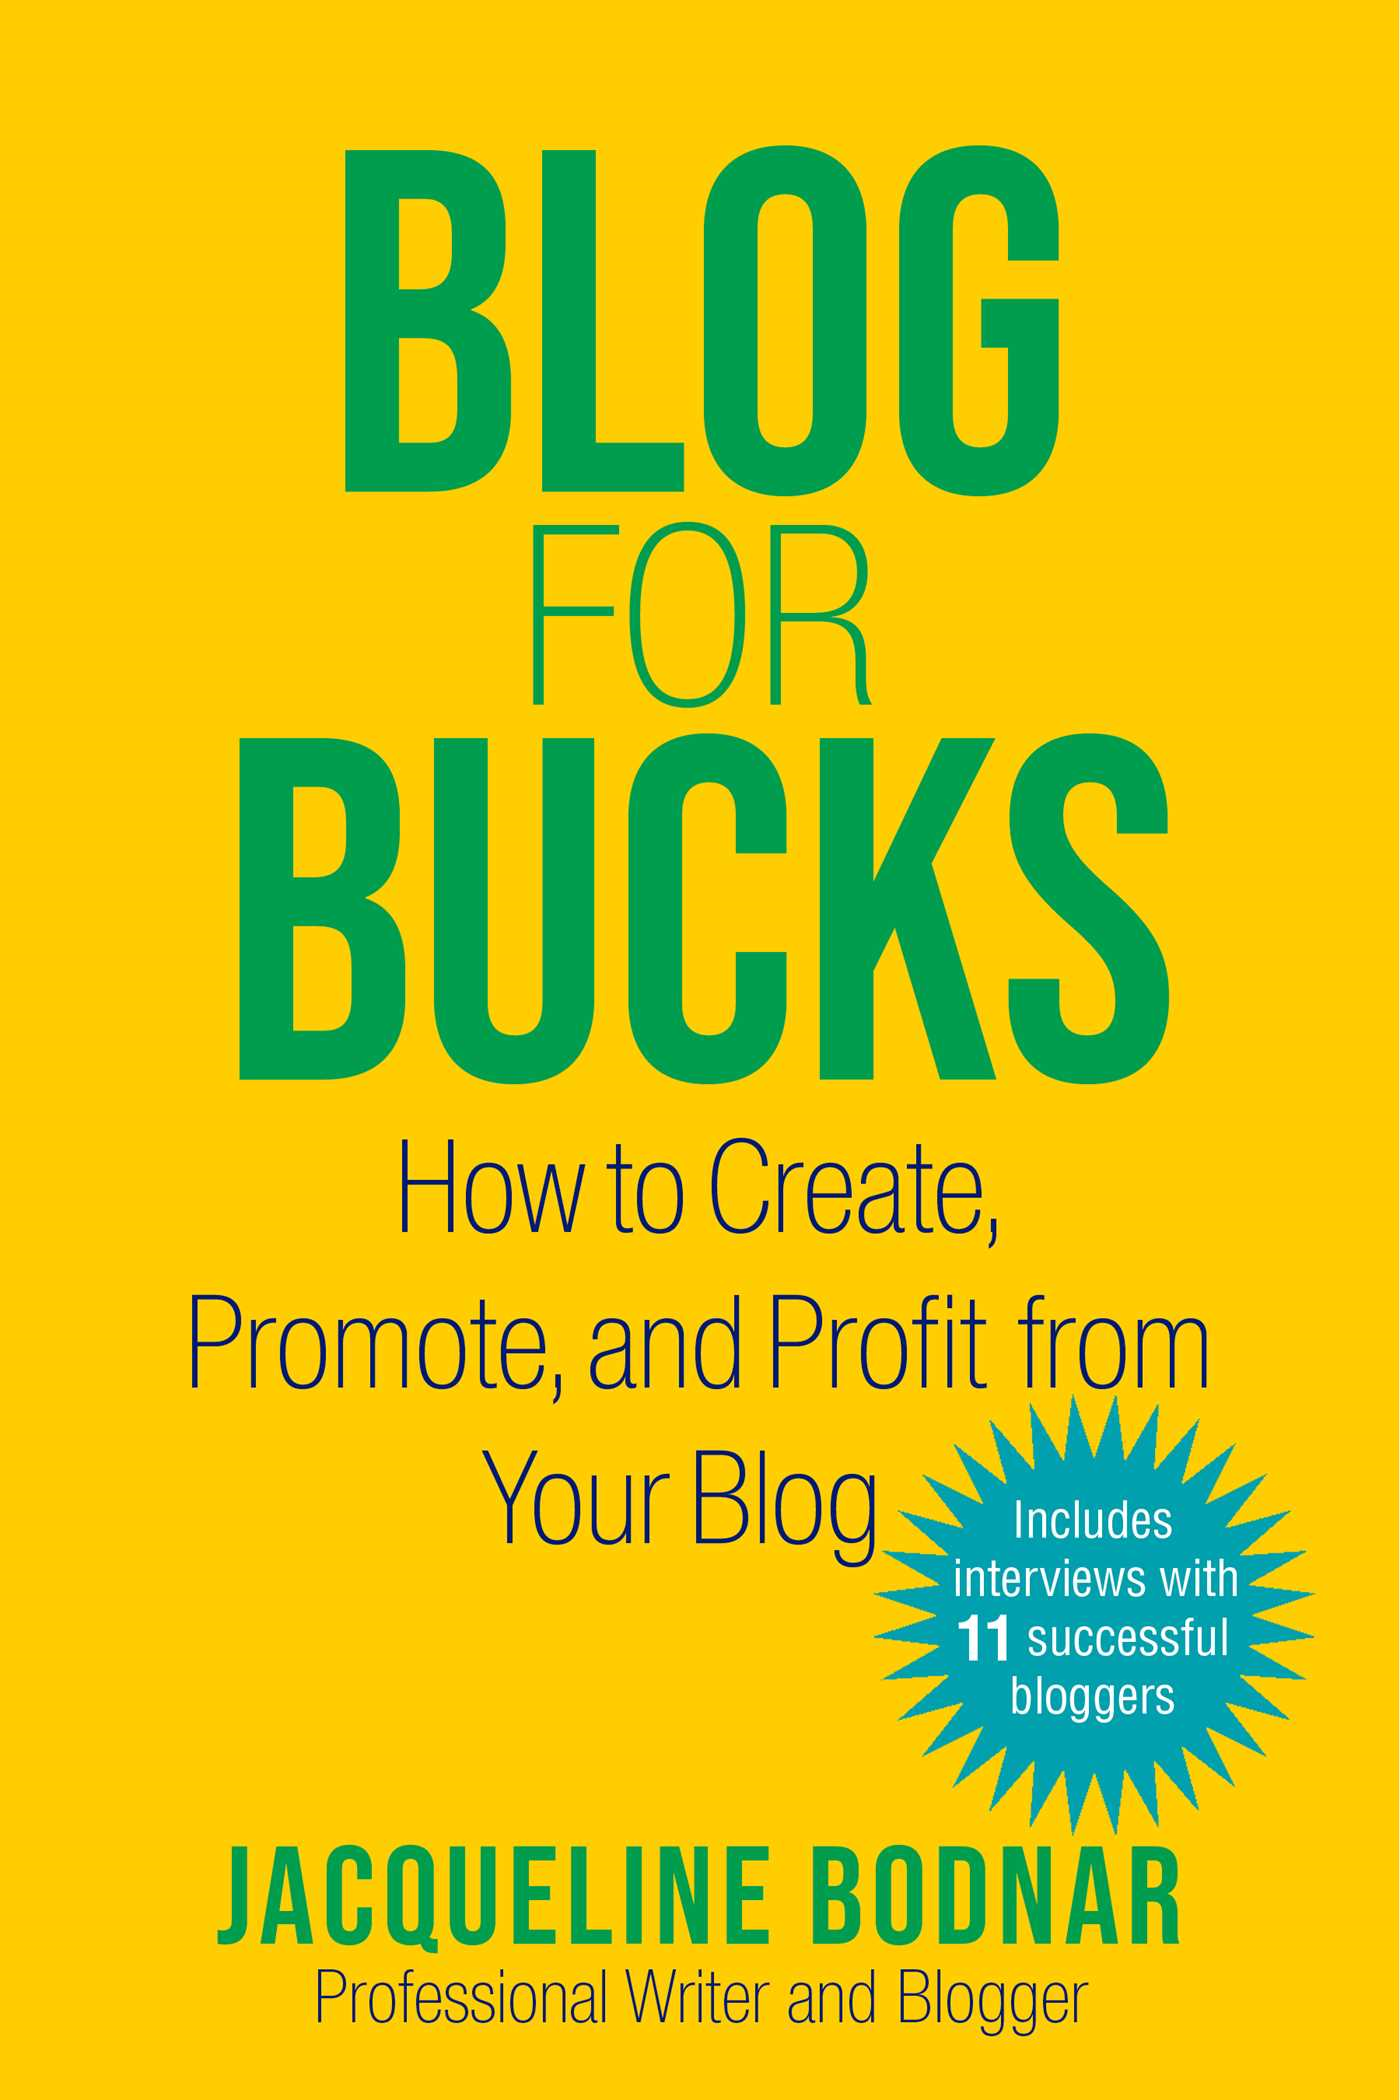 Blog for Bucks